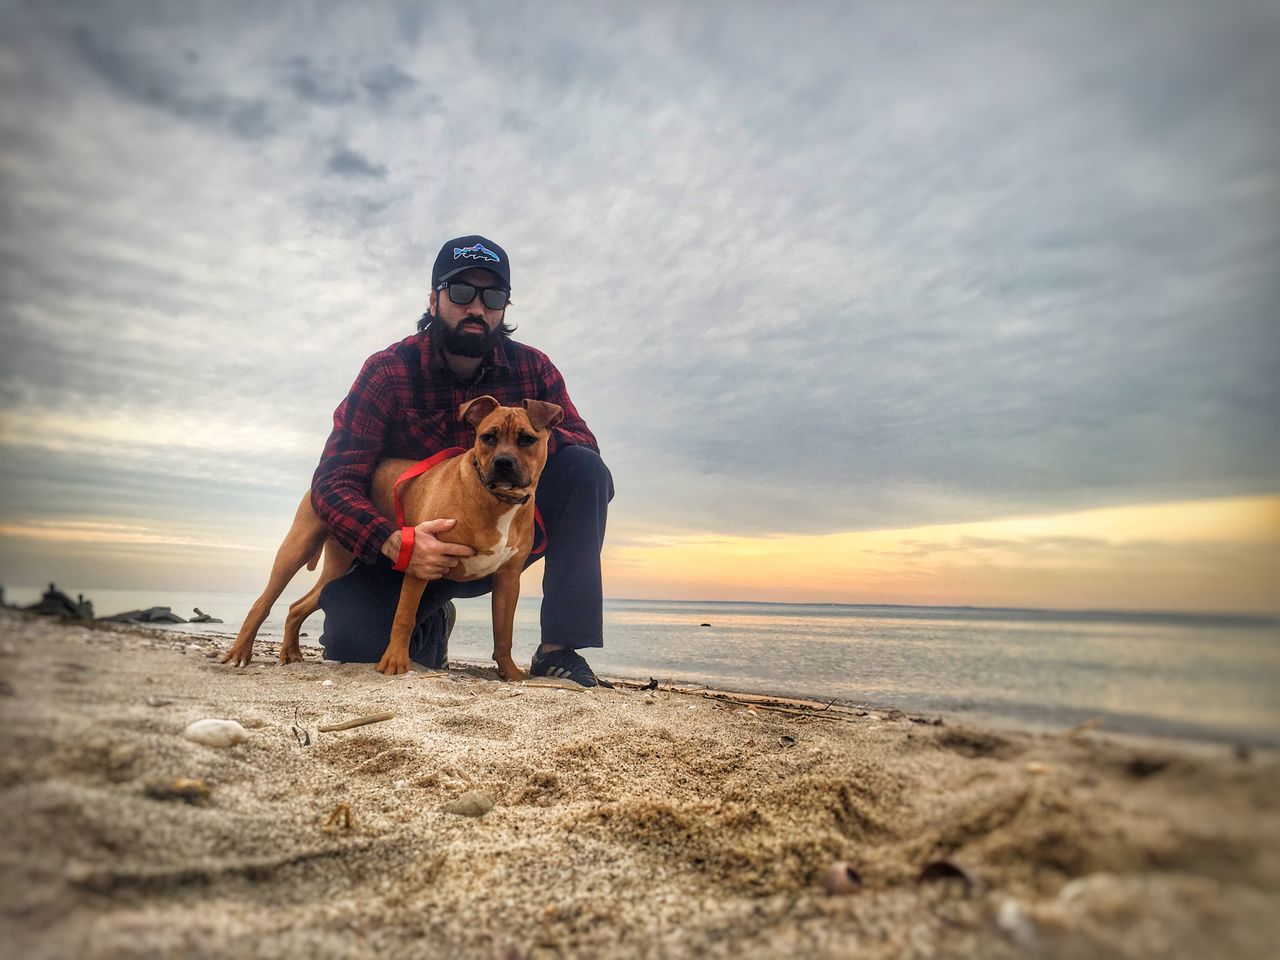 dog, sea, pets, beach, sunset, one animal, horizon over water, sand, nature, real people, outdoors, men, sky, water, domestic animals, happiness, full length, bonding, friendship, beauty in nature, mammal, one person, day, adult, people